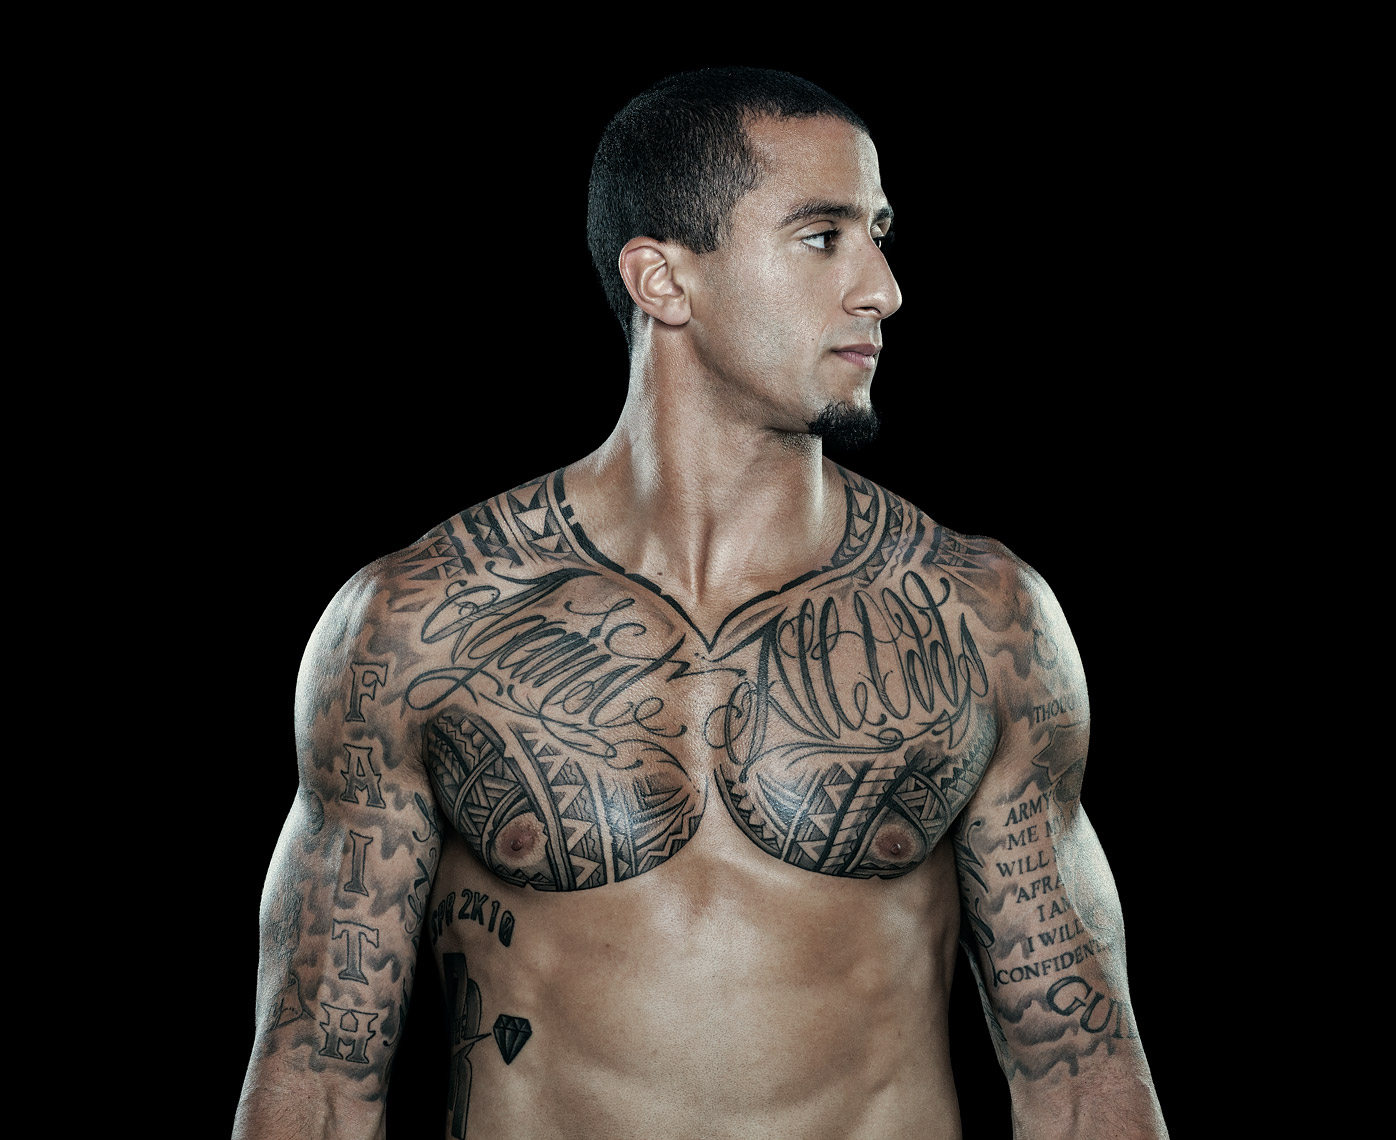 Colin Kaepernick photographed by Scott Witter